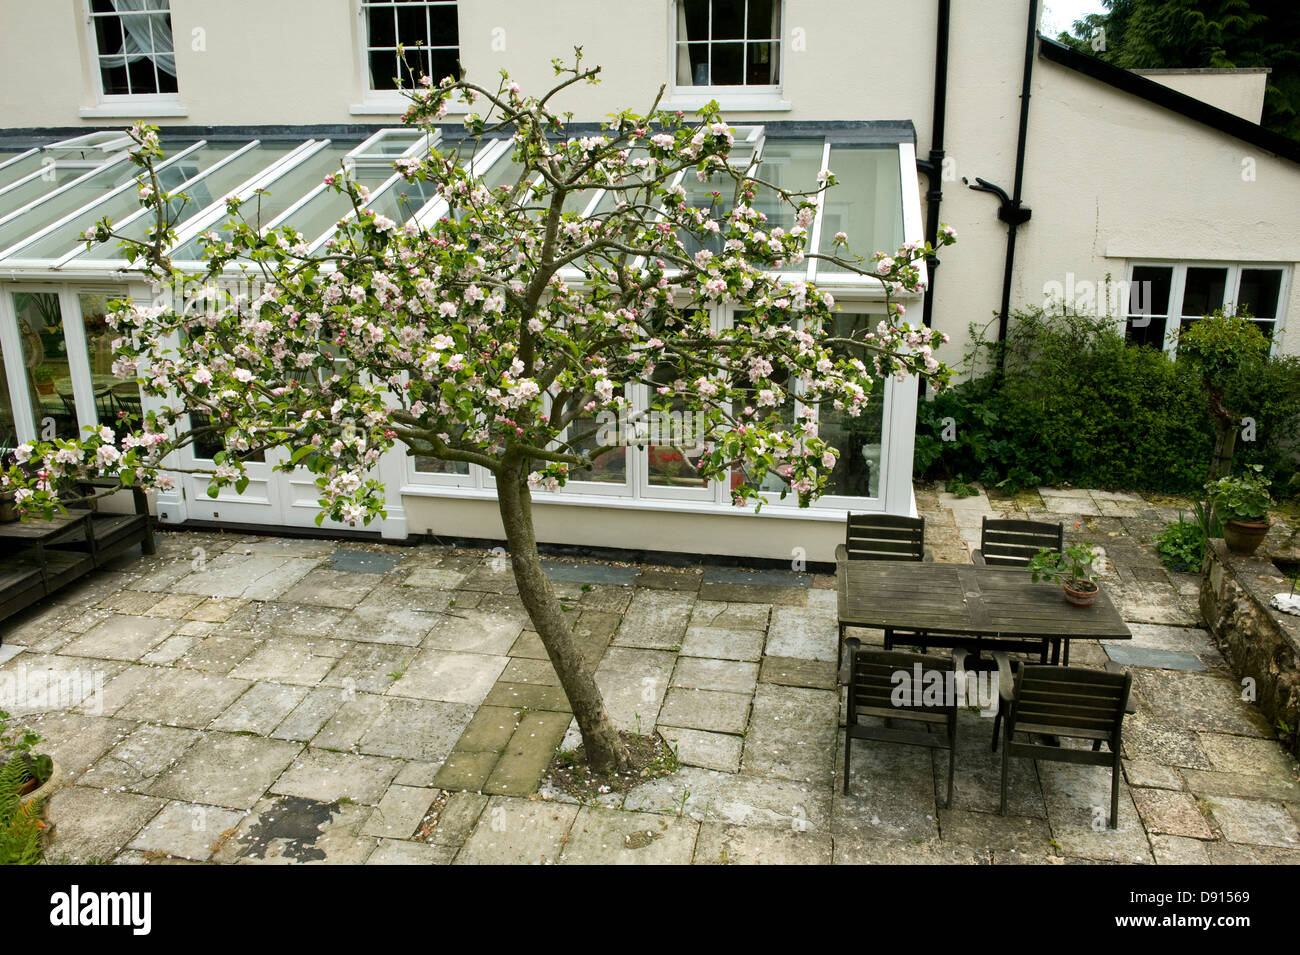 A Bramley apple tree in full blossom just outside a large conservatory at the back of a Georgian house in Devon - Stock Image